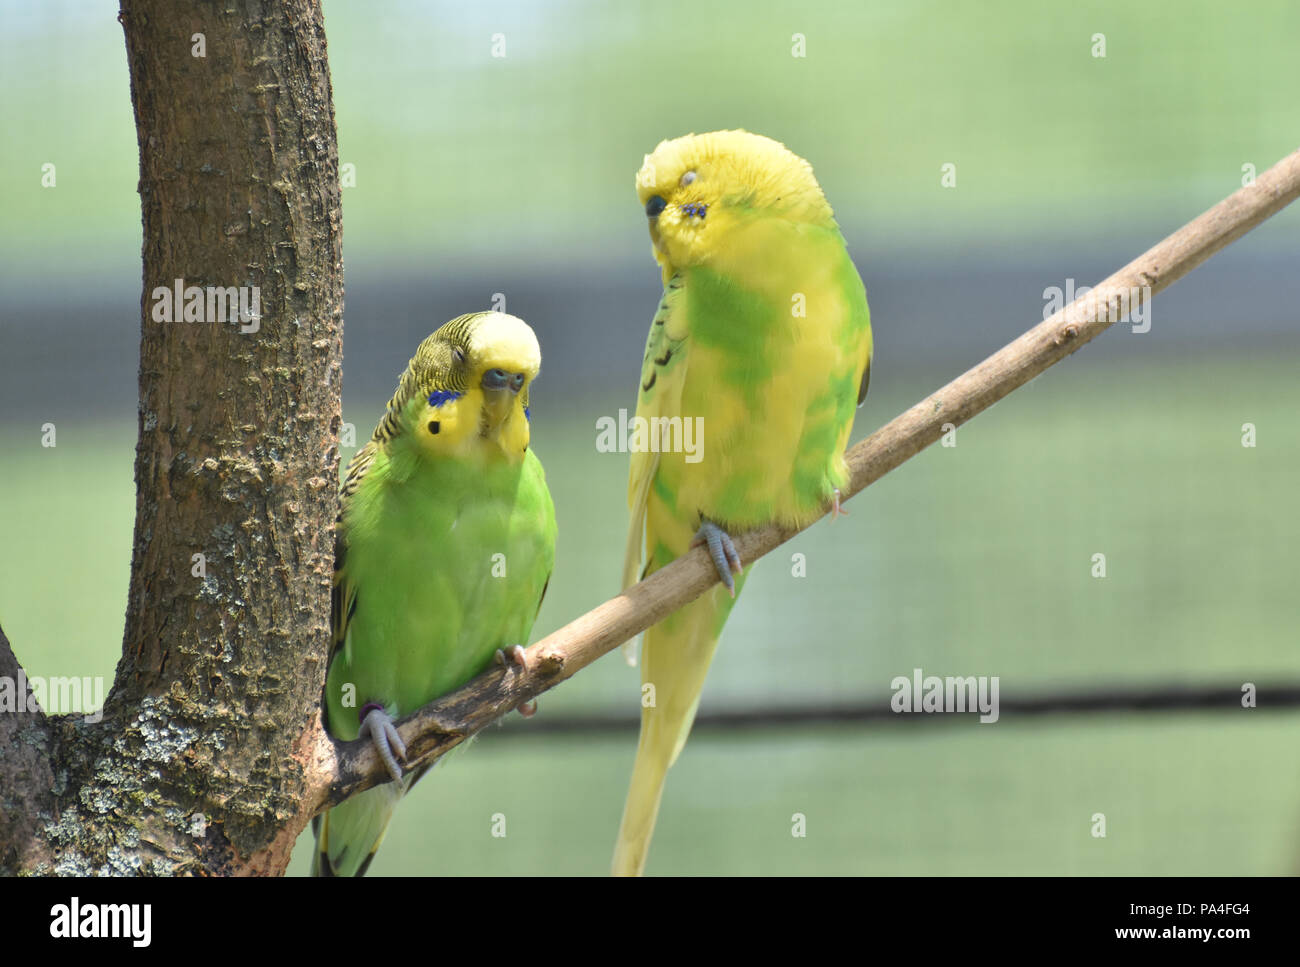 Two yellow and green parakeets sitting on a tree branch. - Stock Image